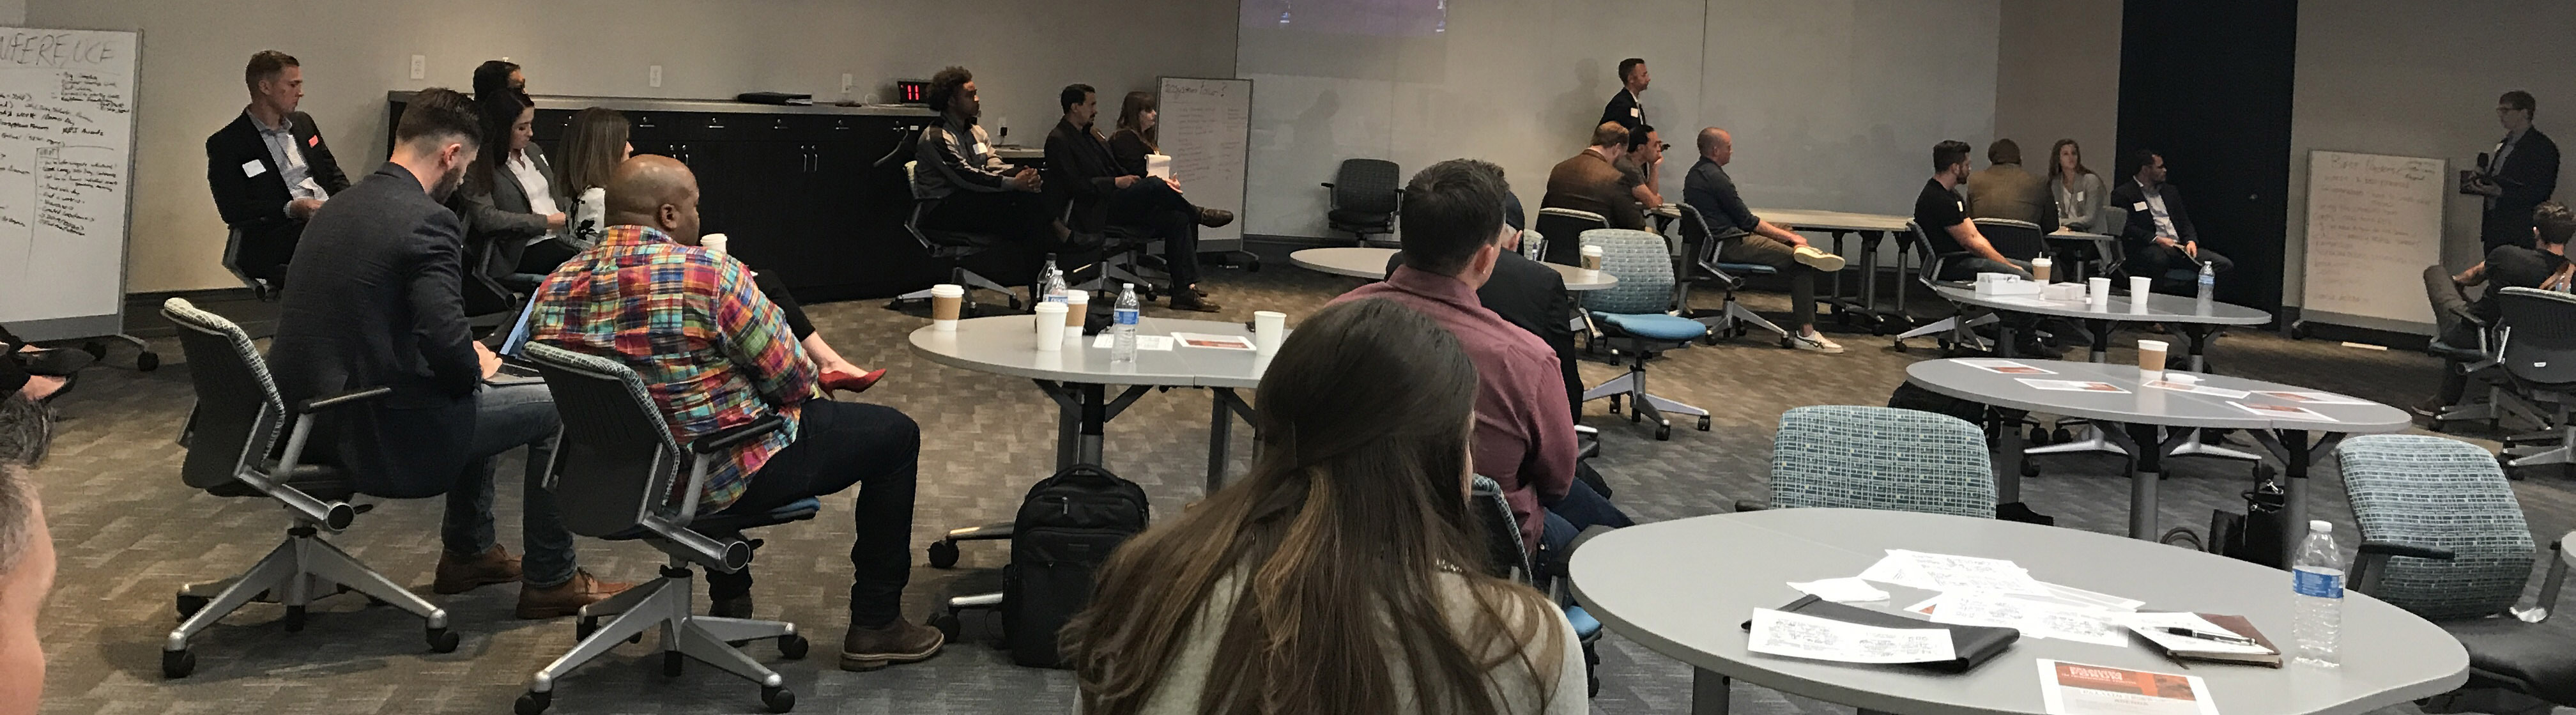 Focus groups tackled big issues about the entrepreneurial ecosystem of Oklahoma